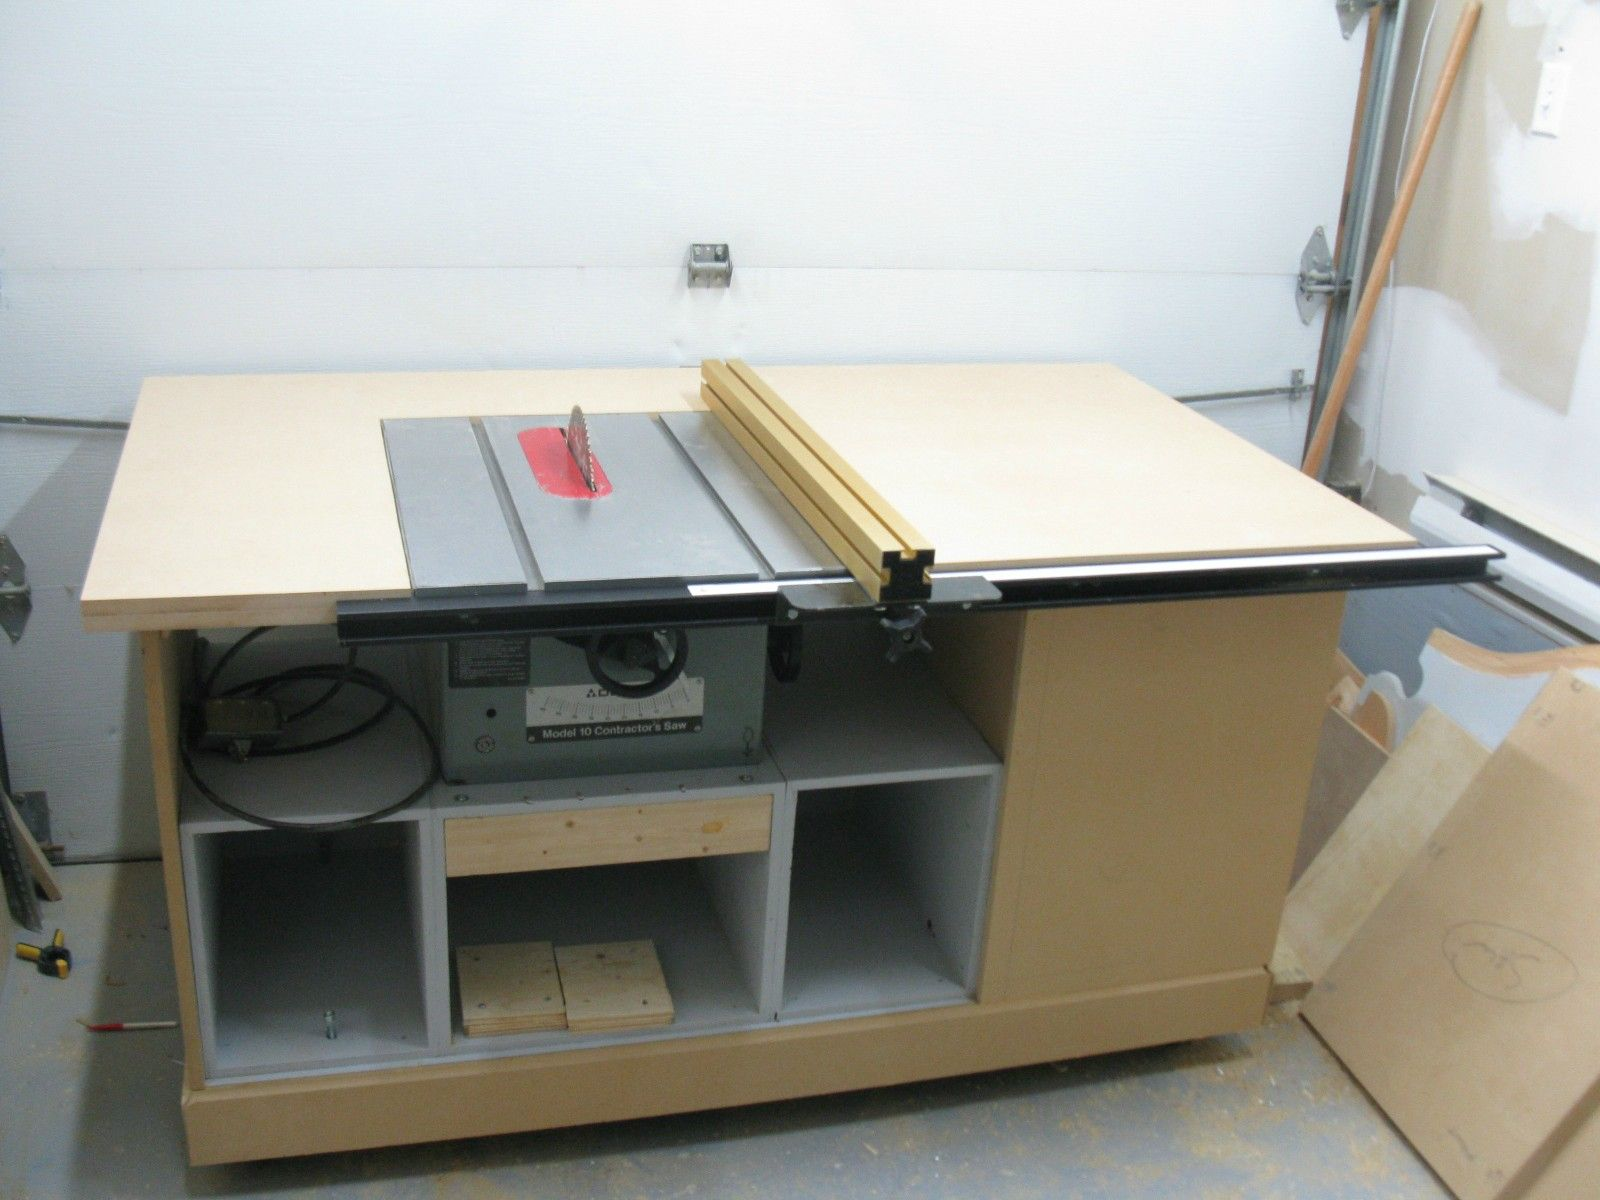 Workstation in 2020 Diy table saw, Table saw, Diy table